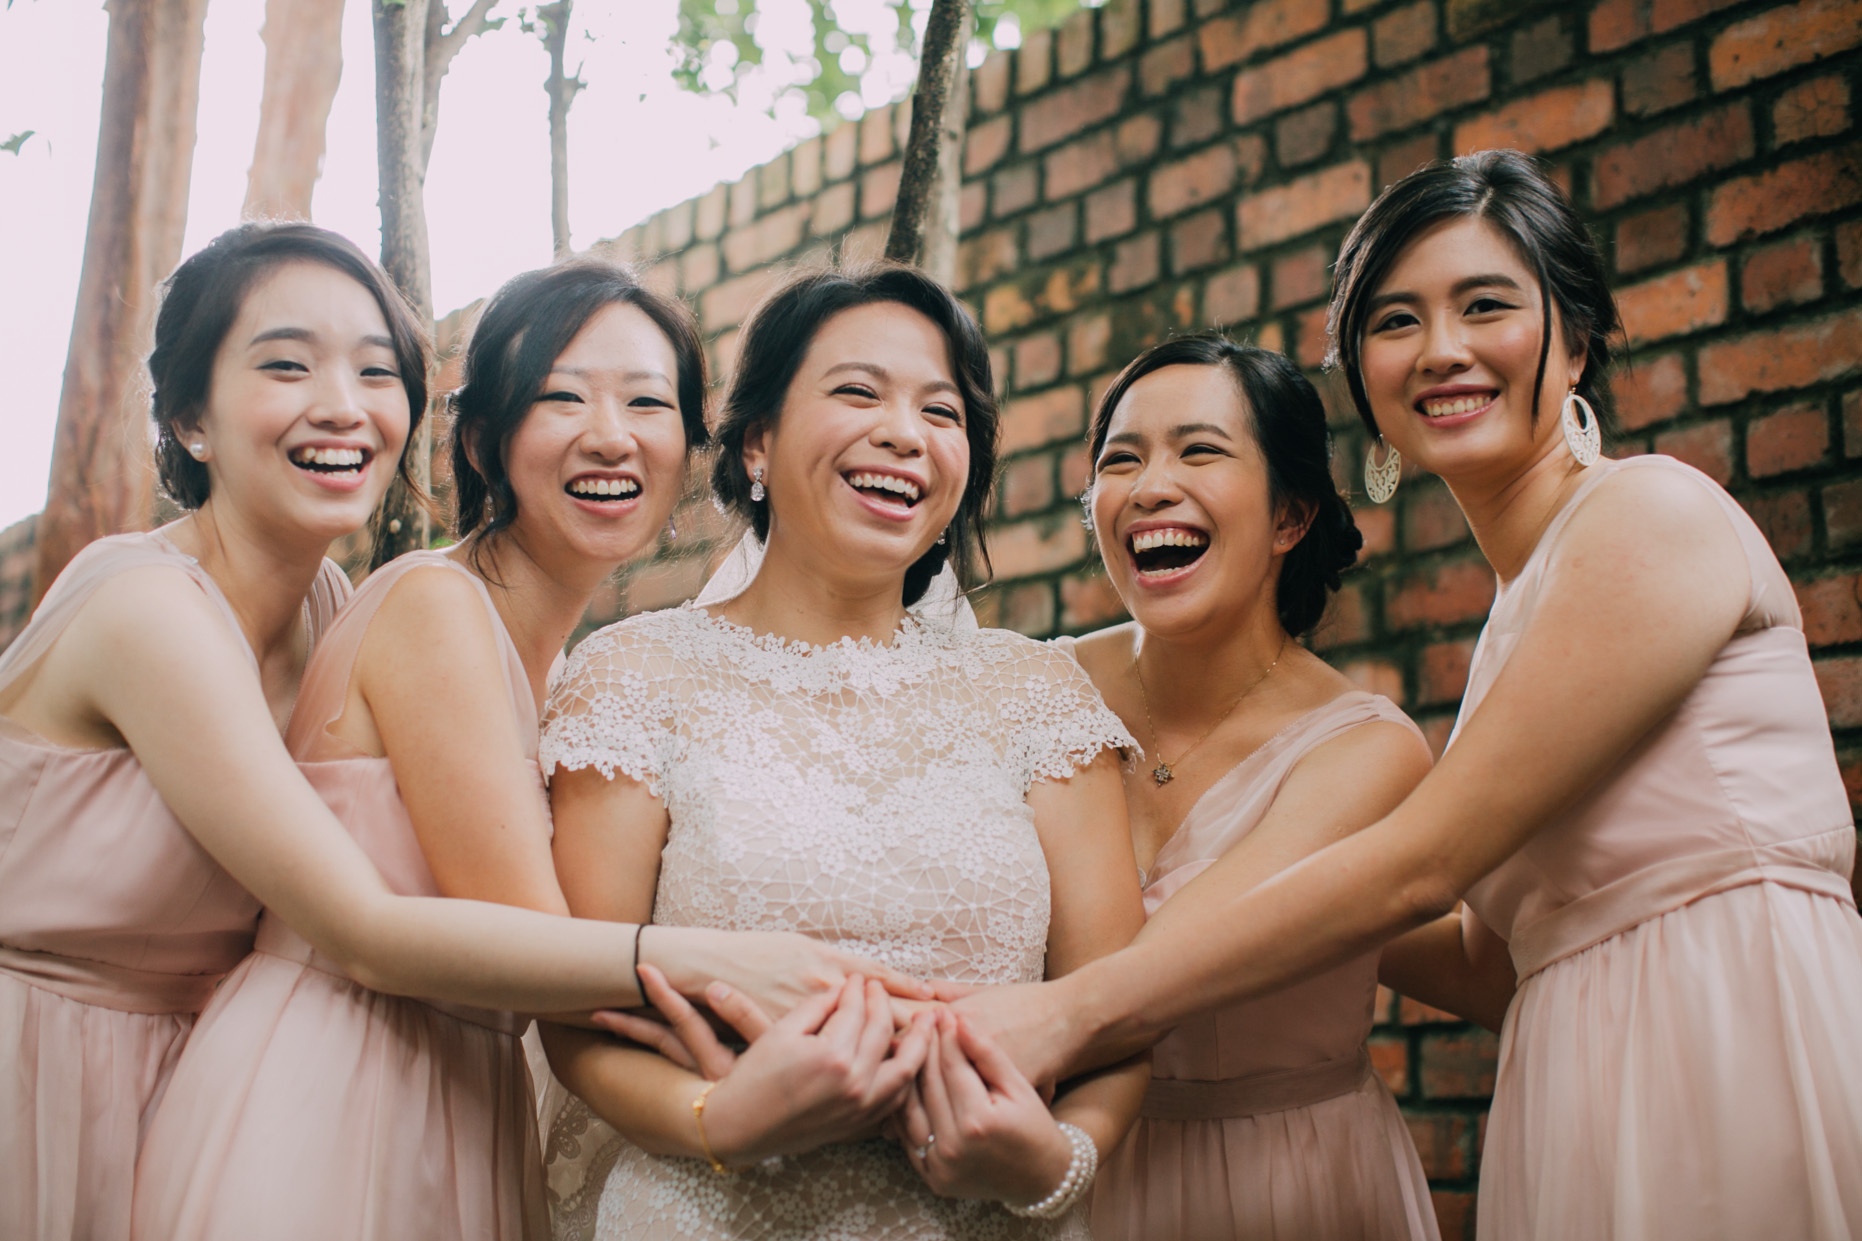 27-hellojanelee-sam grace-malaysia-wedding-day